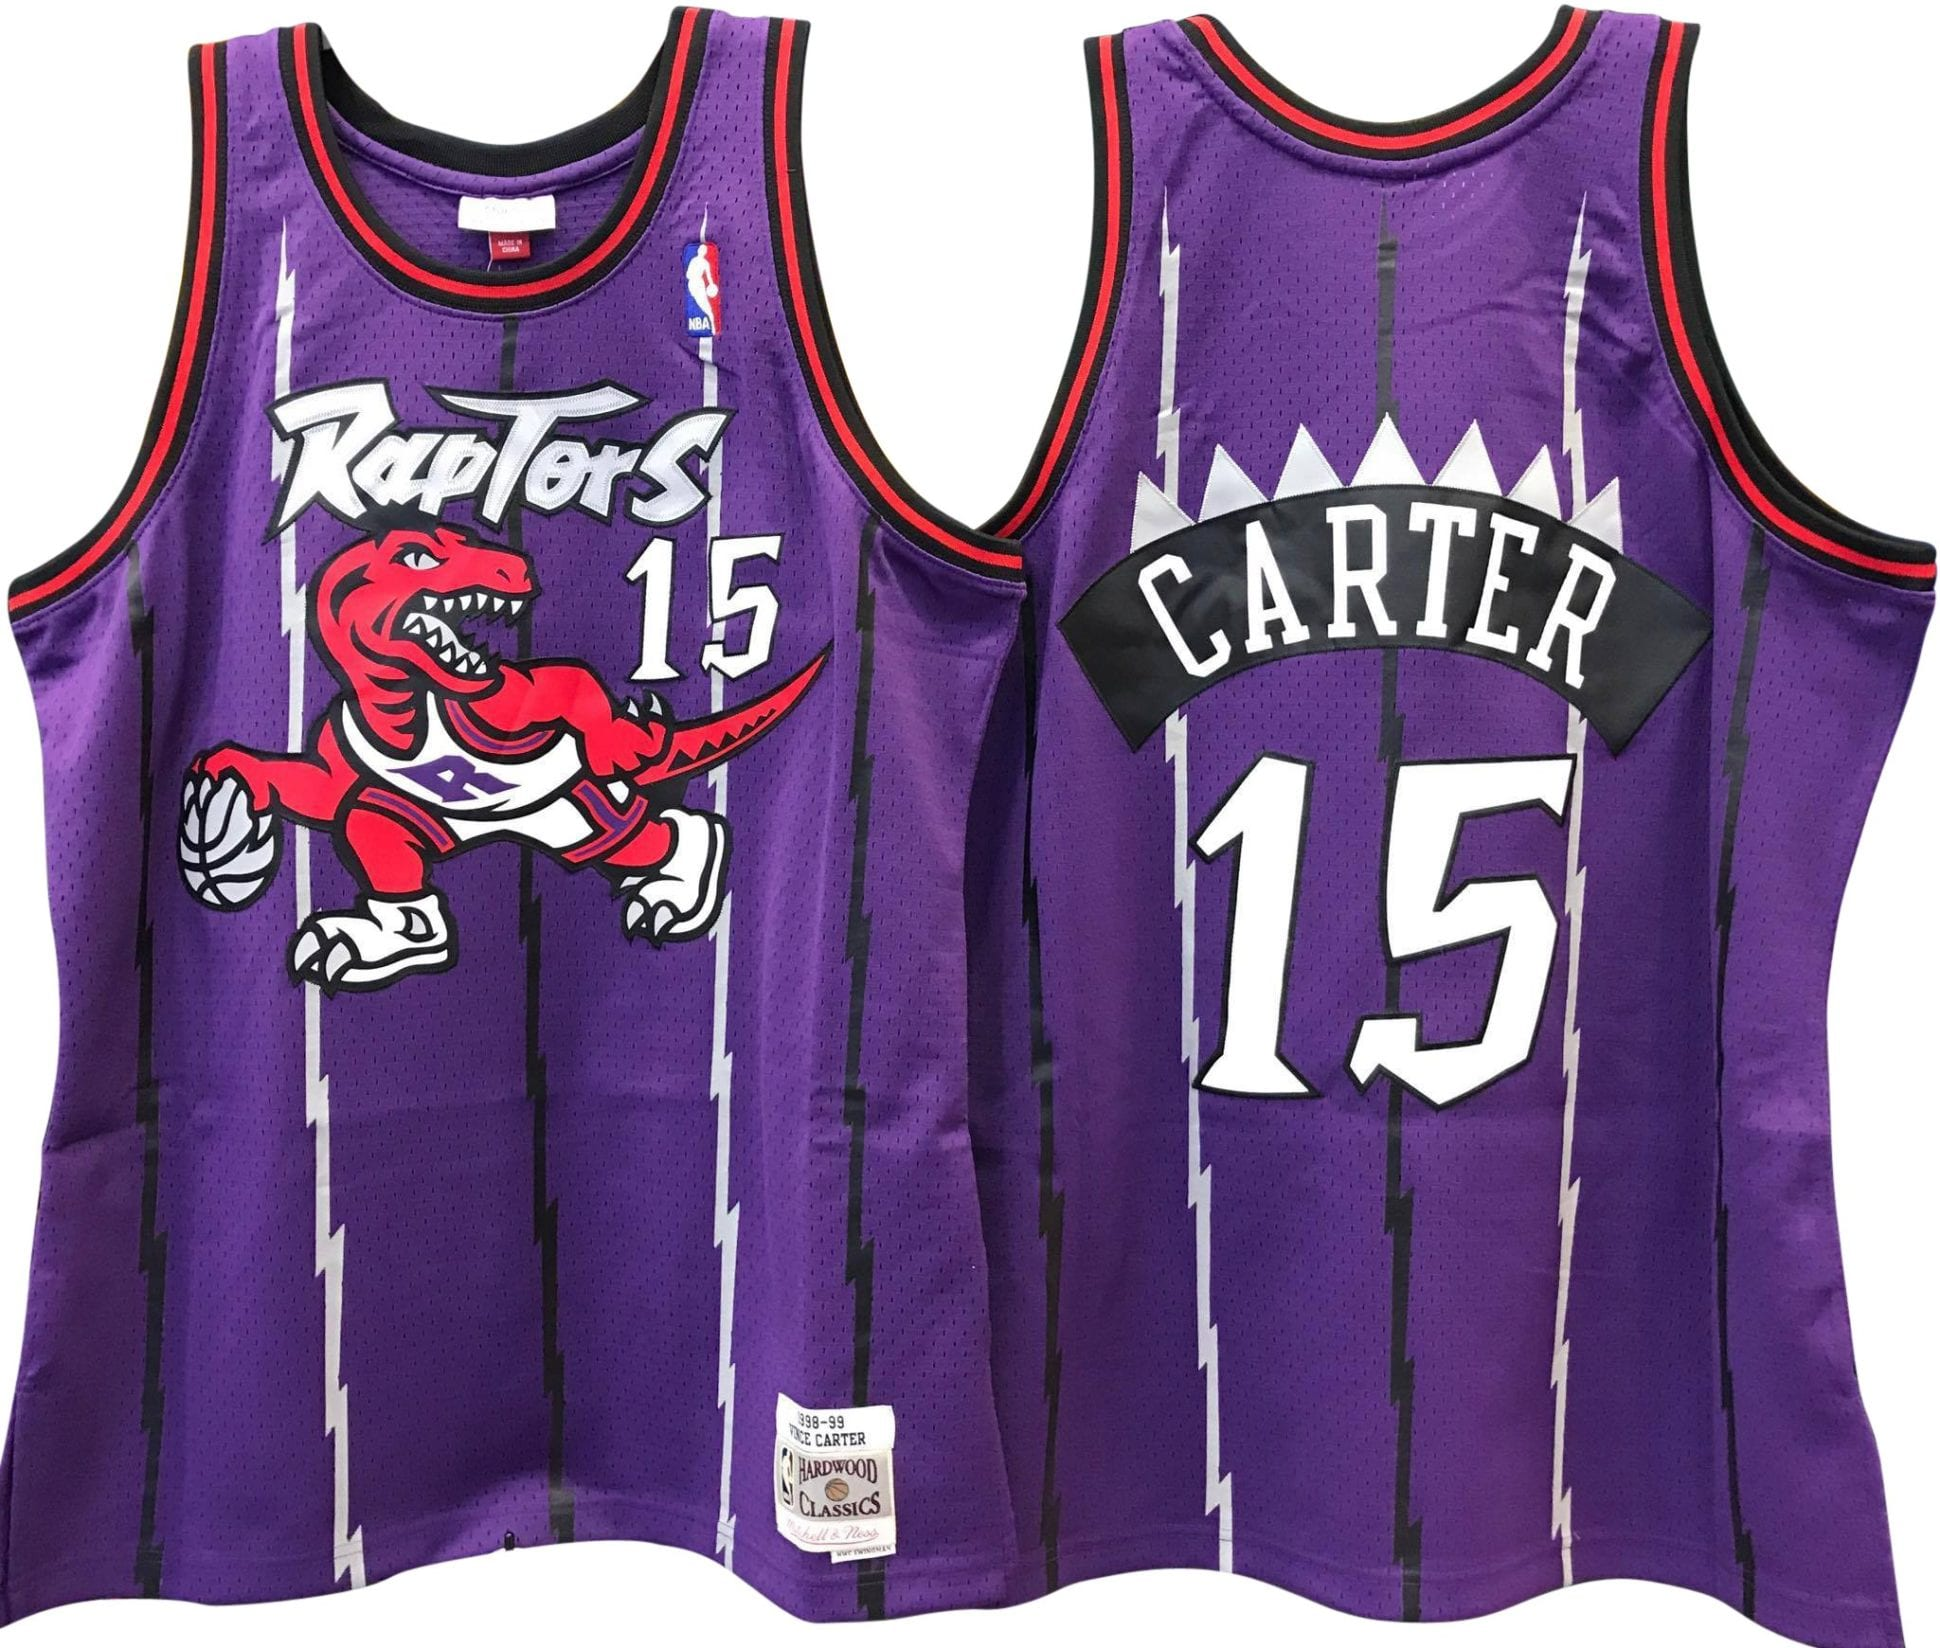 10 Great Throwback Jerseys — We Are Basket